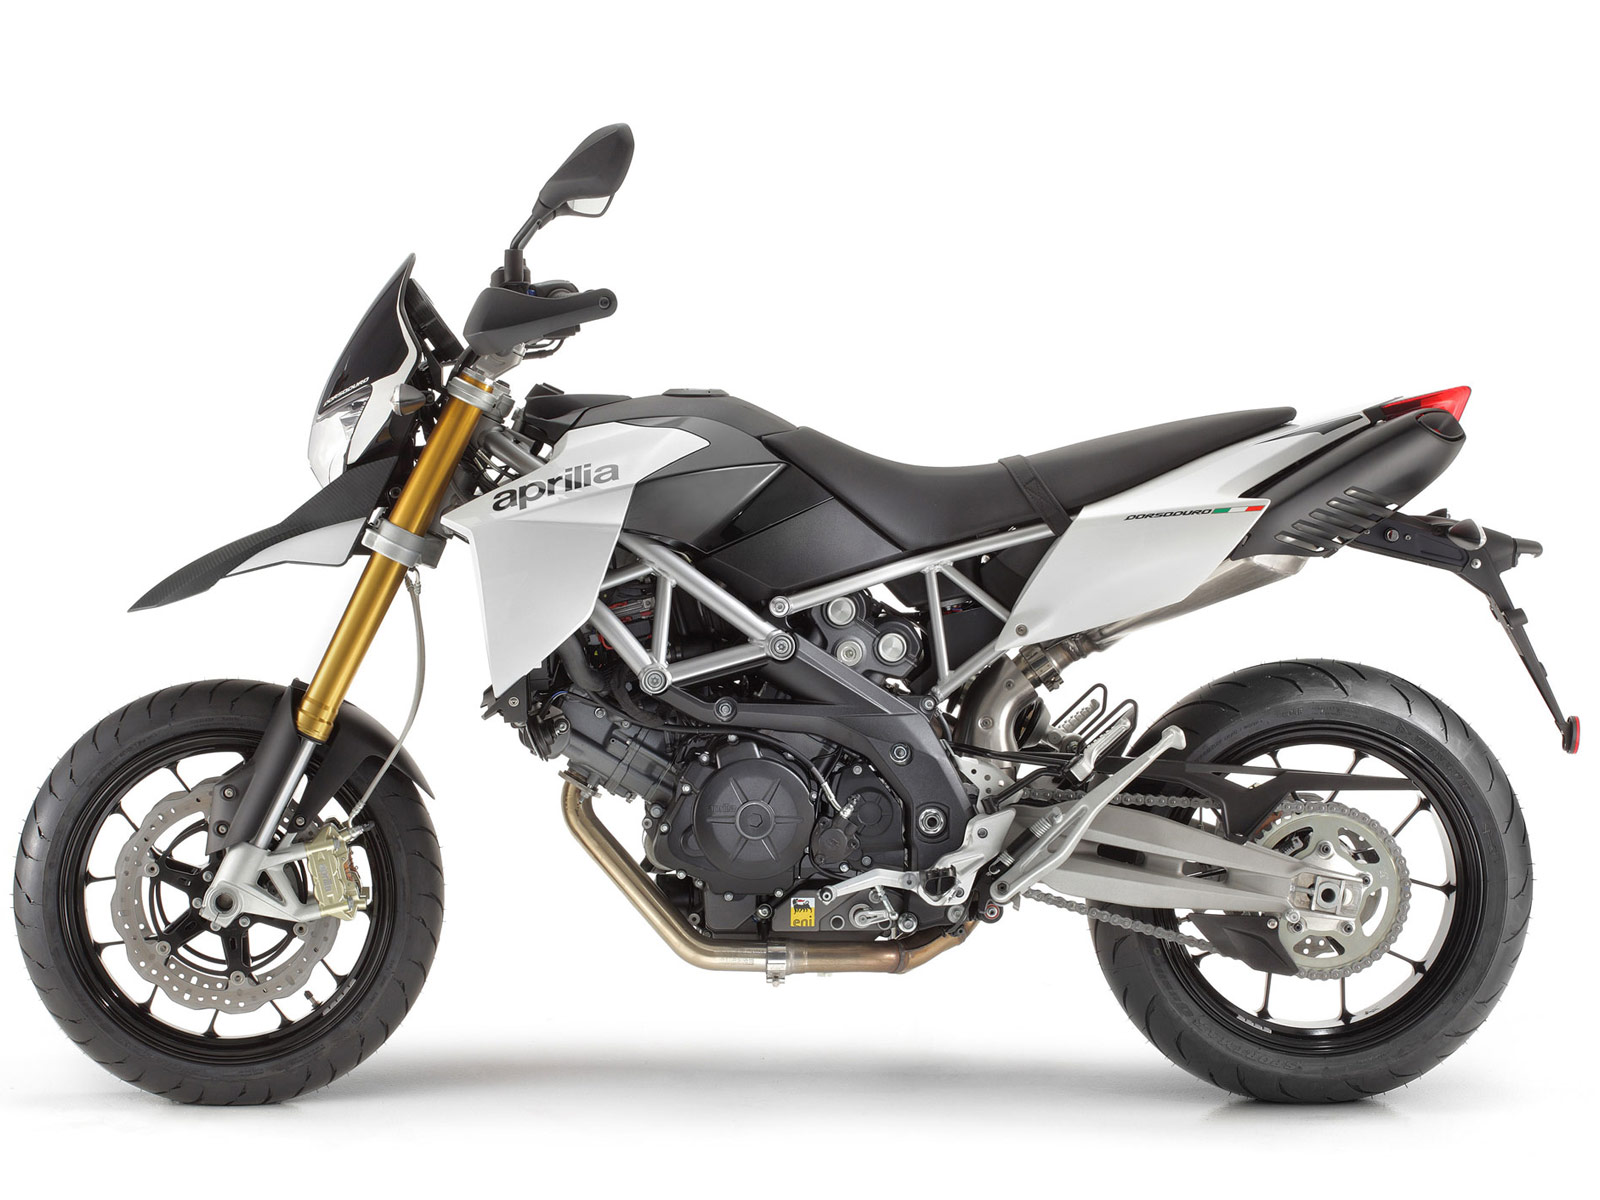 2012 Aprilia Dorsoduro 750 Motorcycle Photos